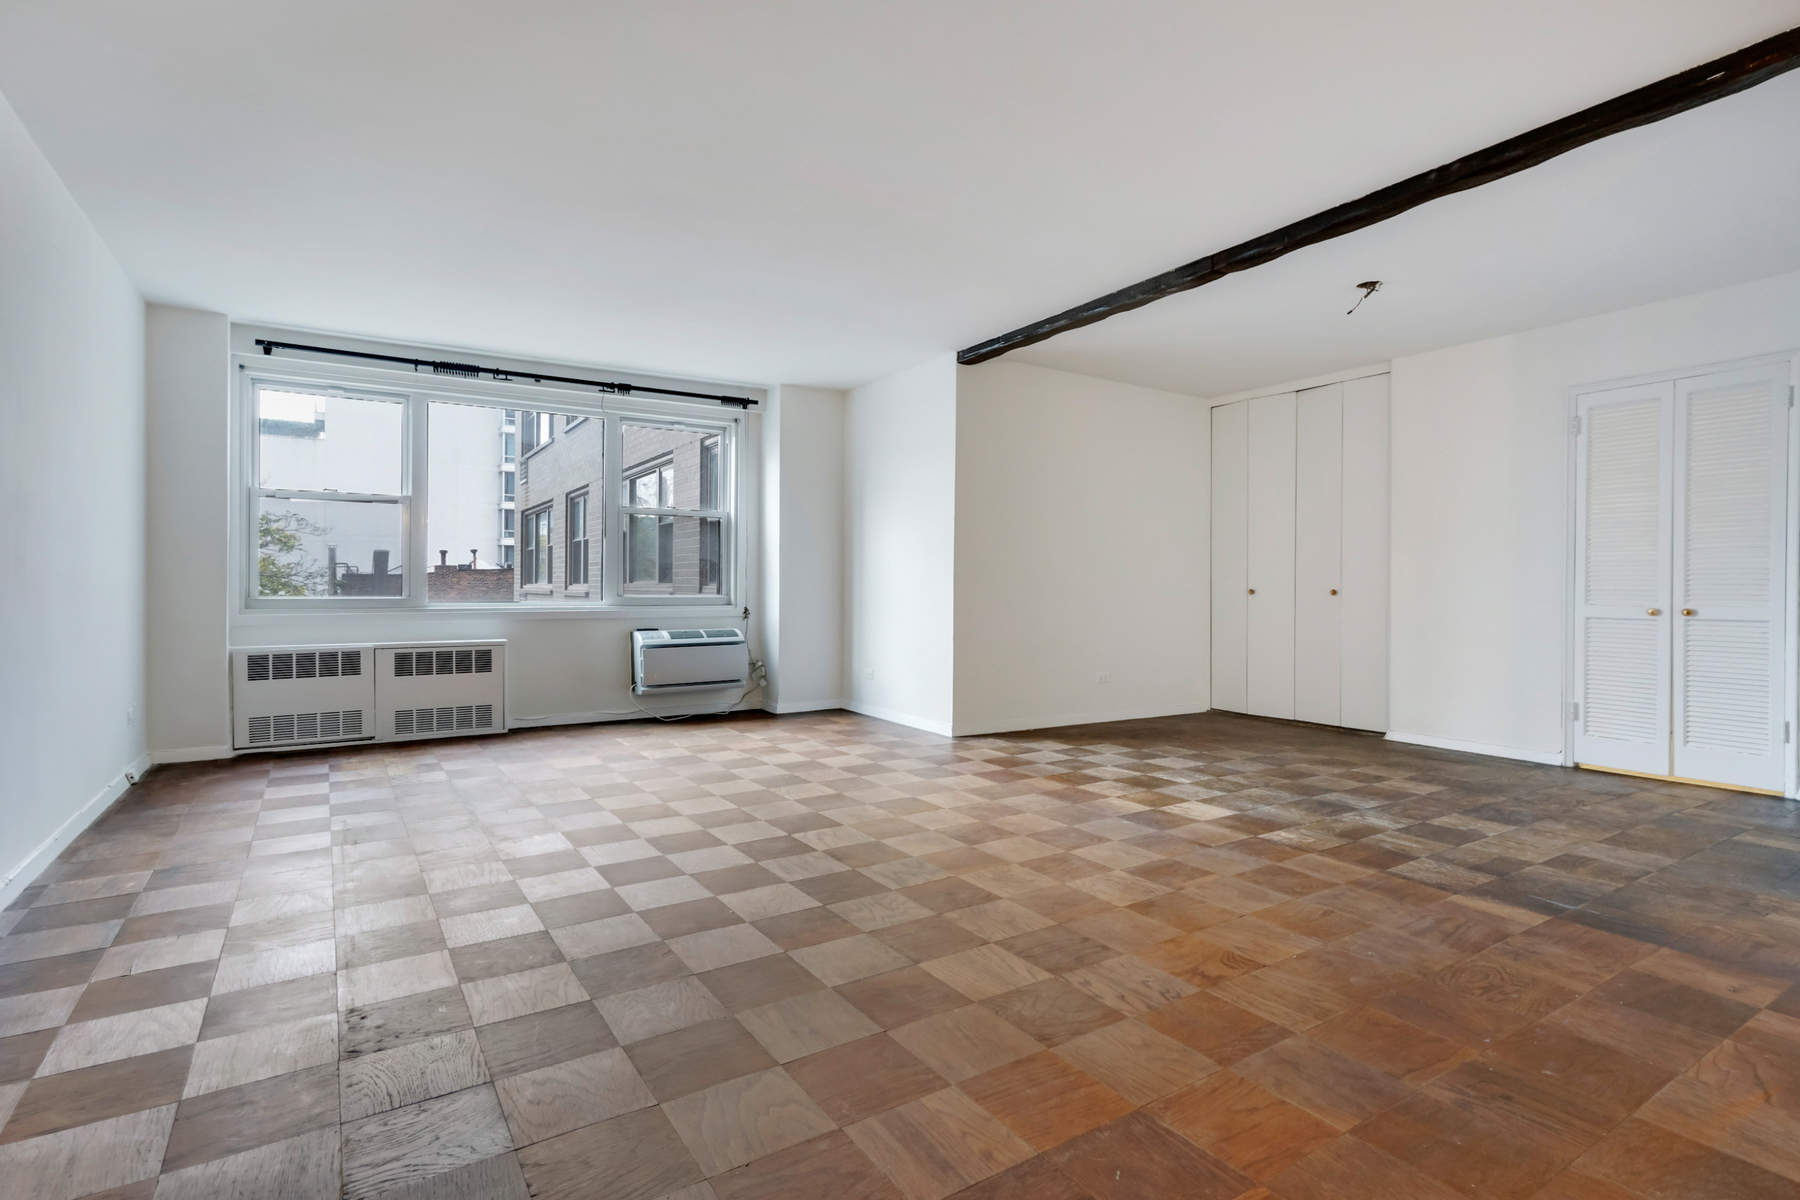 Co-op for Sale at Make this Home Distinctly Yours 77 Seventh Avenue Apt 7V New York, New York 10011 United States